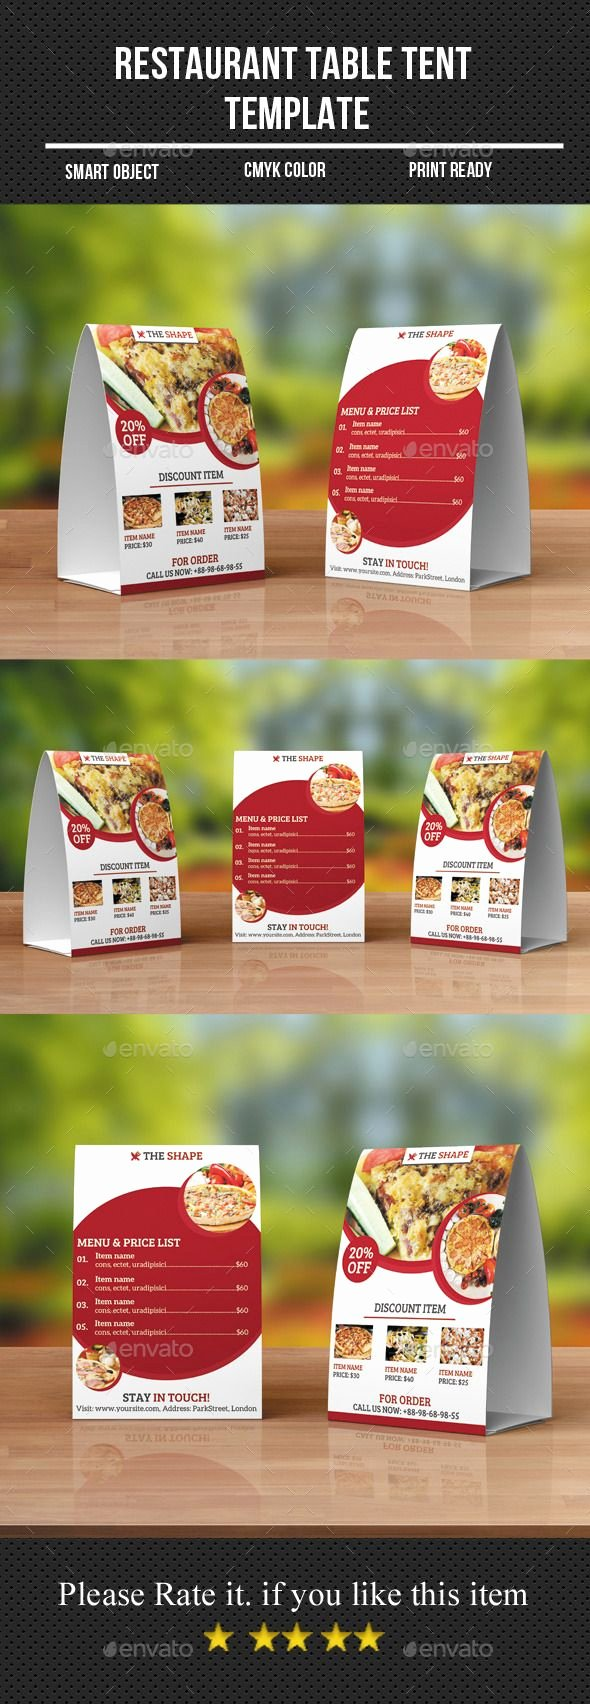 Restaurant Table Tent Template Awesome Best 25 Table Tents Ideas On Pinterest